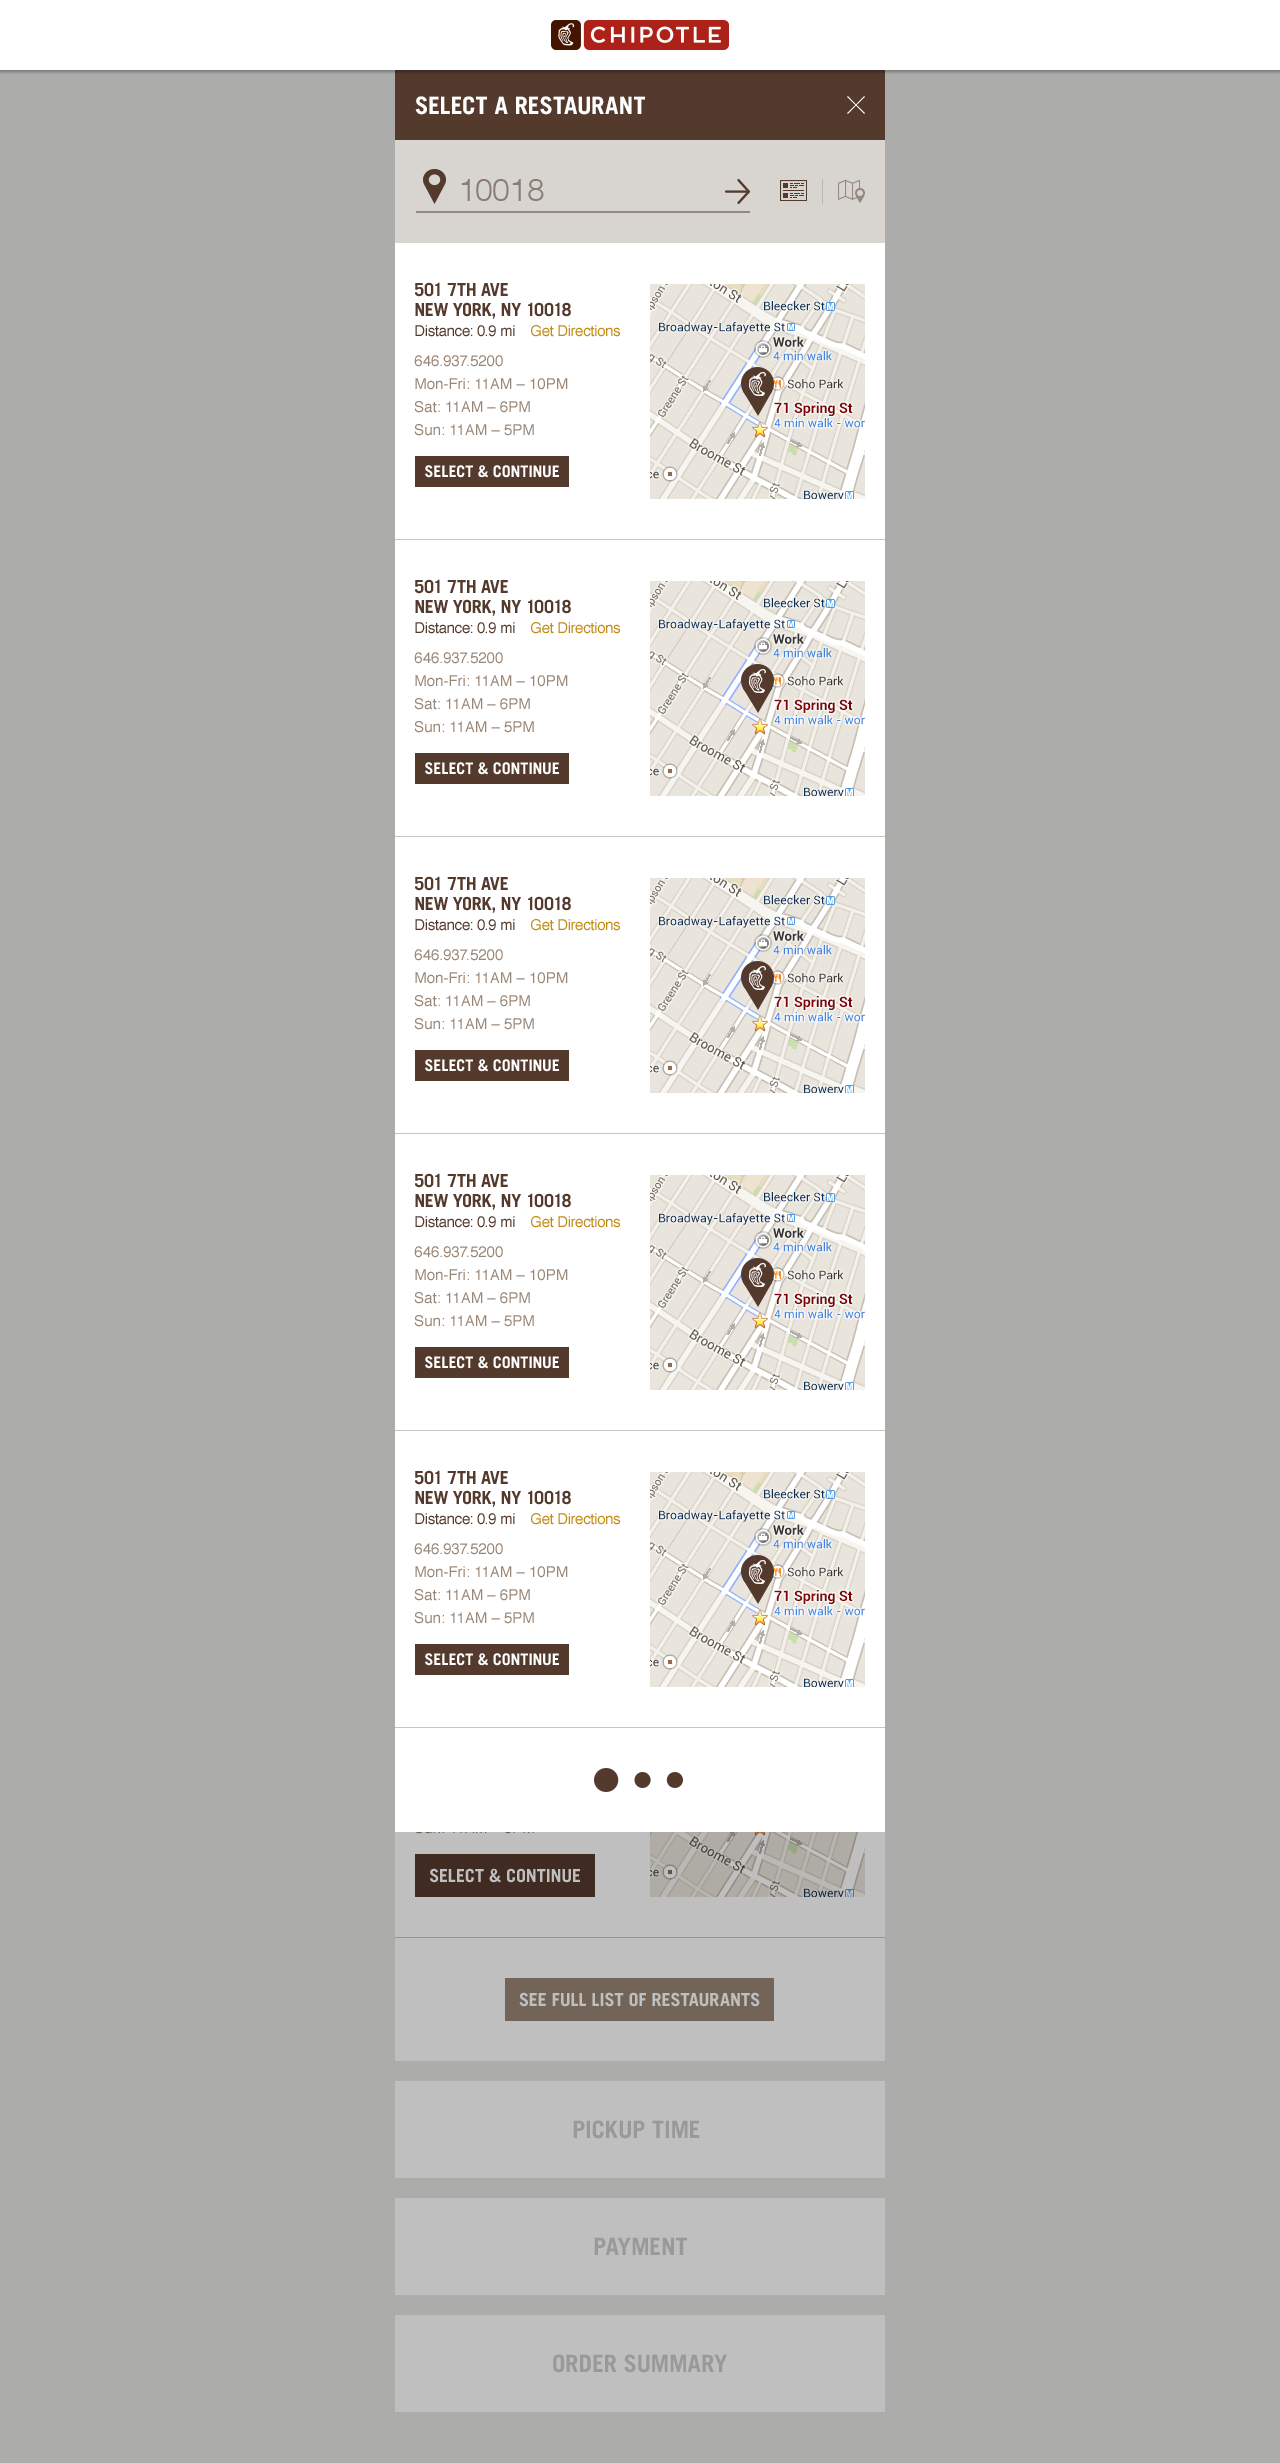 4_ROO_GroupOrder_Checkout_Full_Restaurant_Modals_List_DT_Card_Size.png